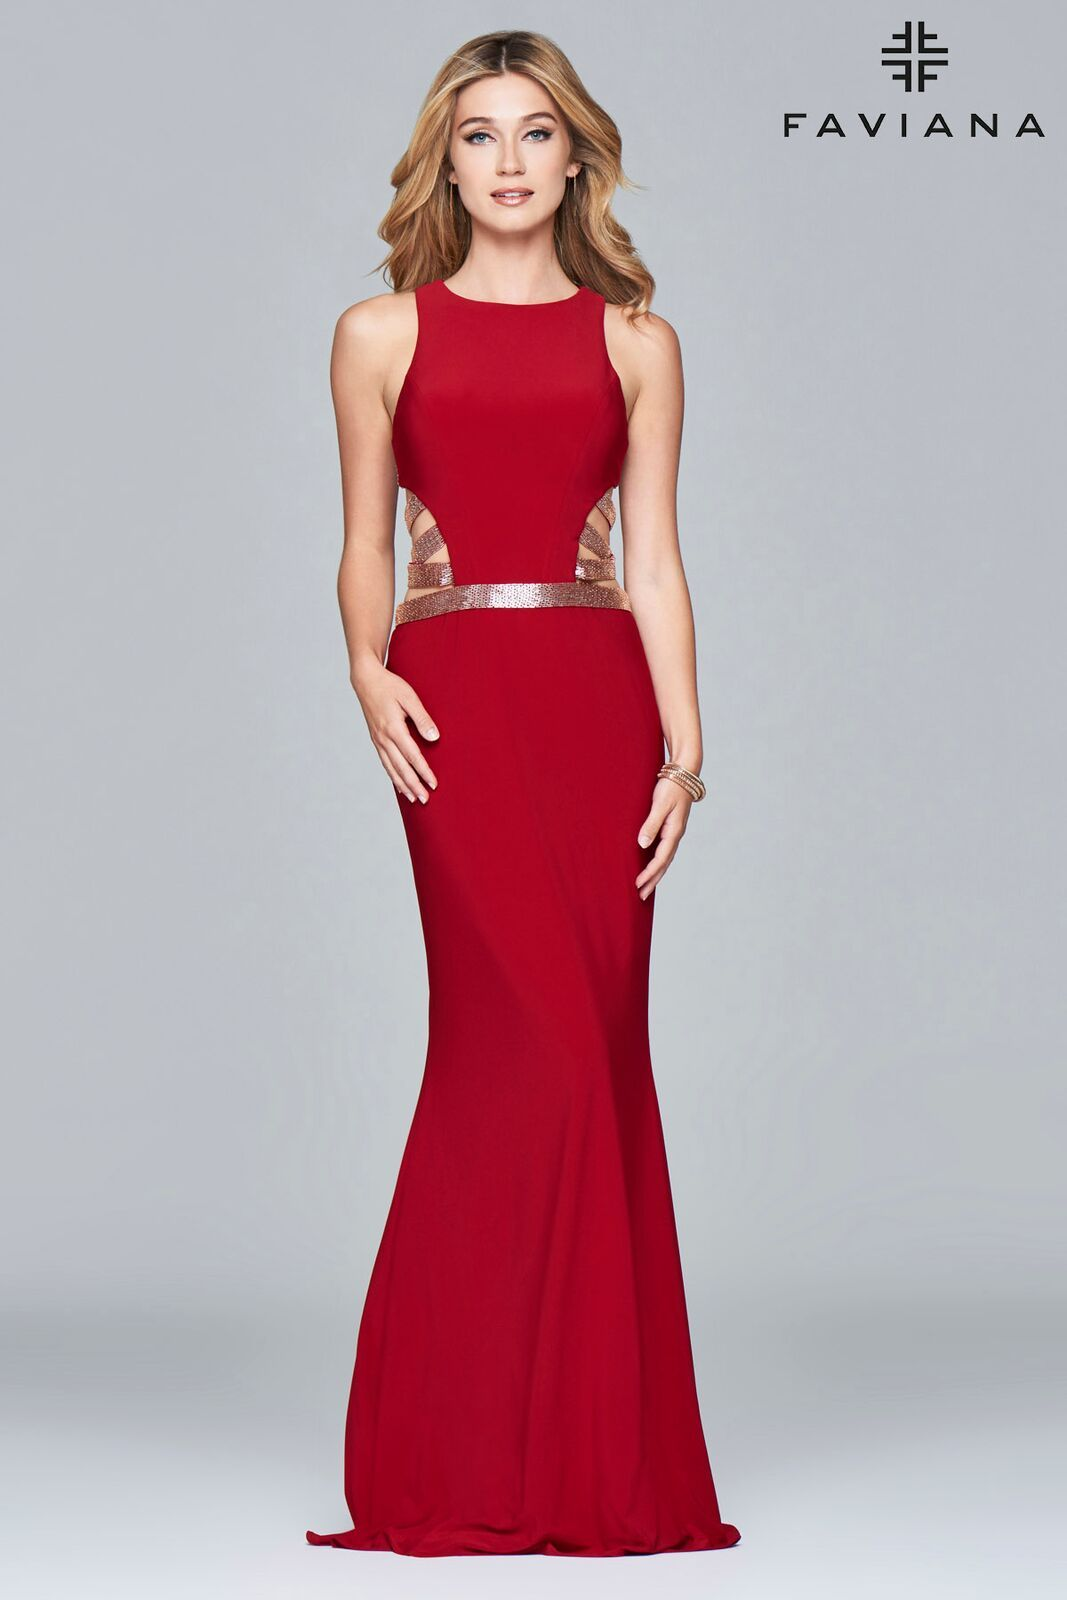 f63a3a6c8f  Faviana Style 7912 is sassy and bold. It features a halter neckline and a  fit and flare skirt and is perfect for an inverted triangle body shape  the  tight ...